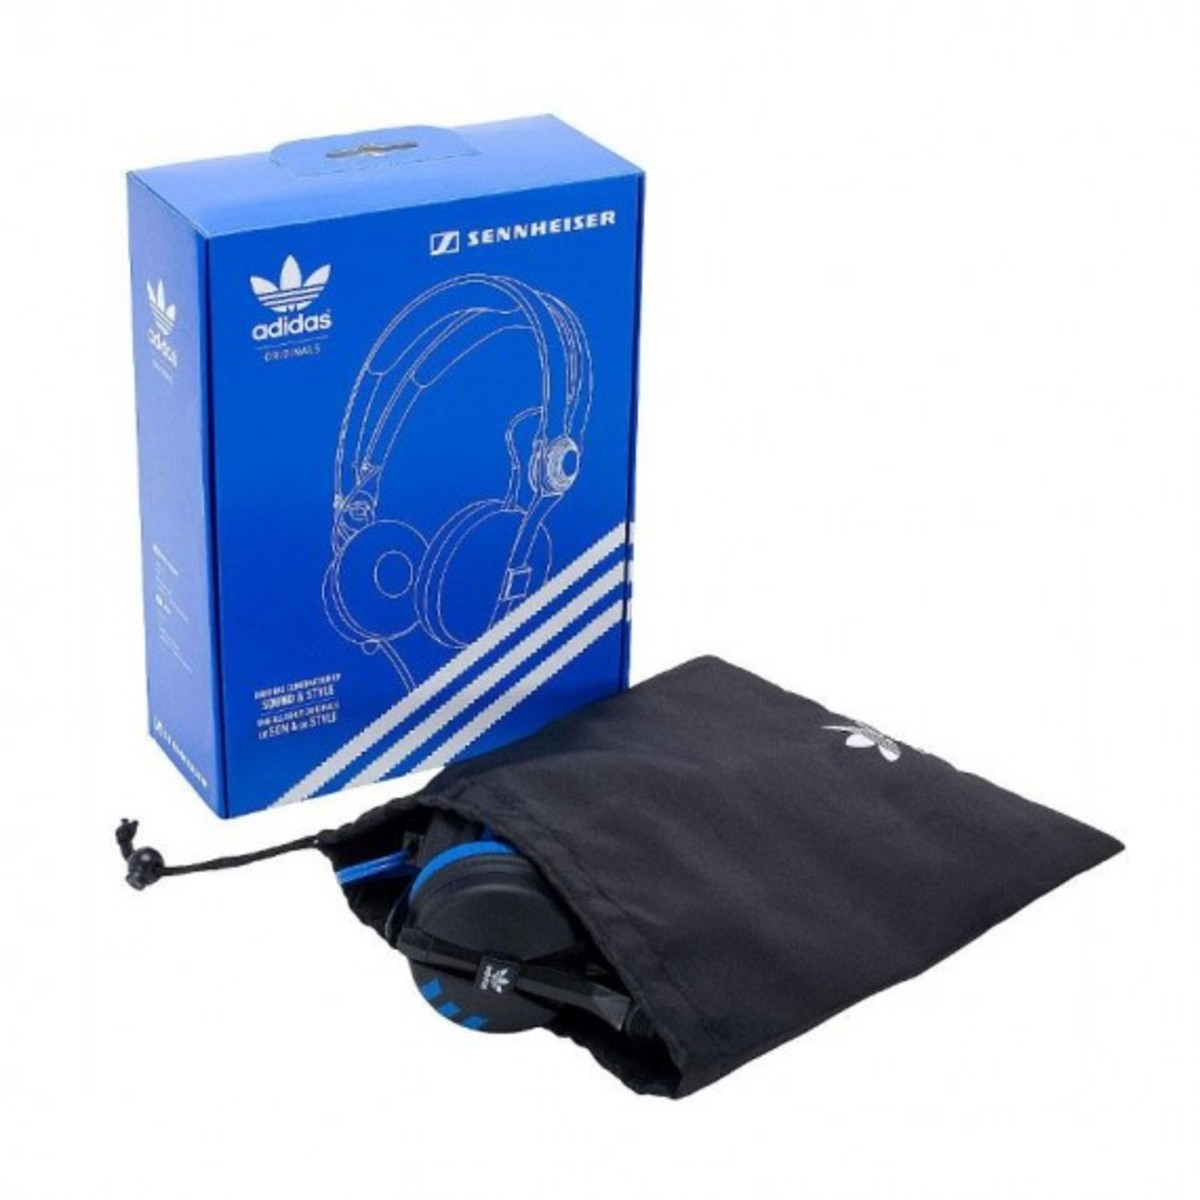 adidas-originals-sennheiser-HD25-1-headphone-04